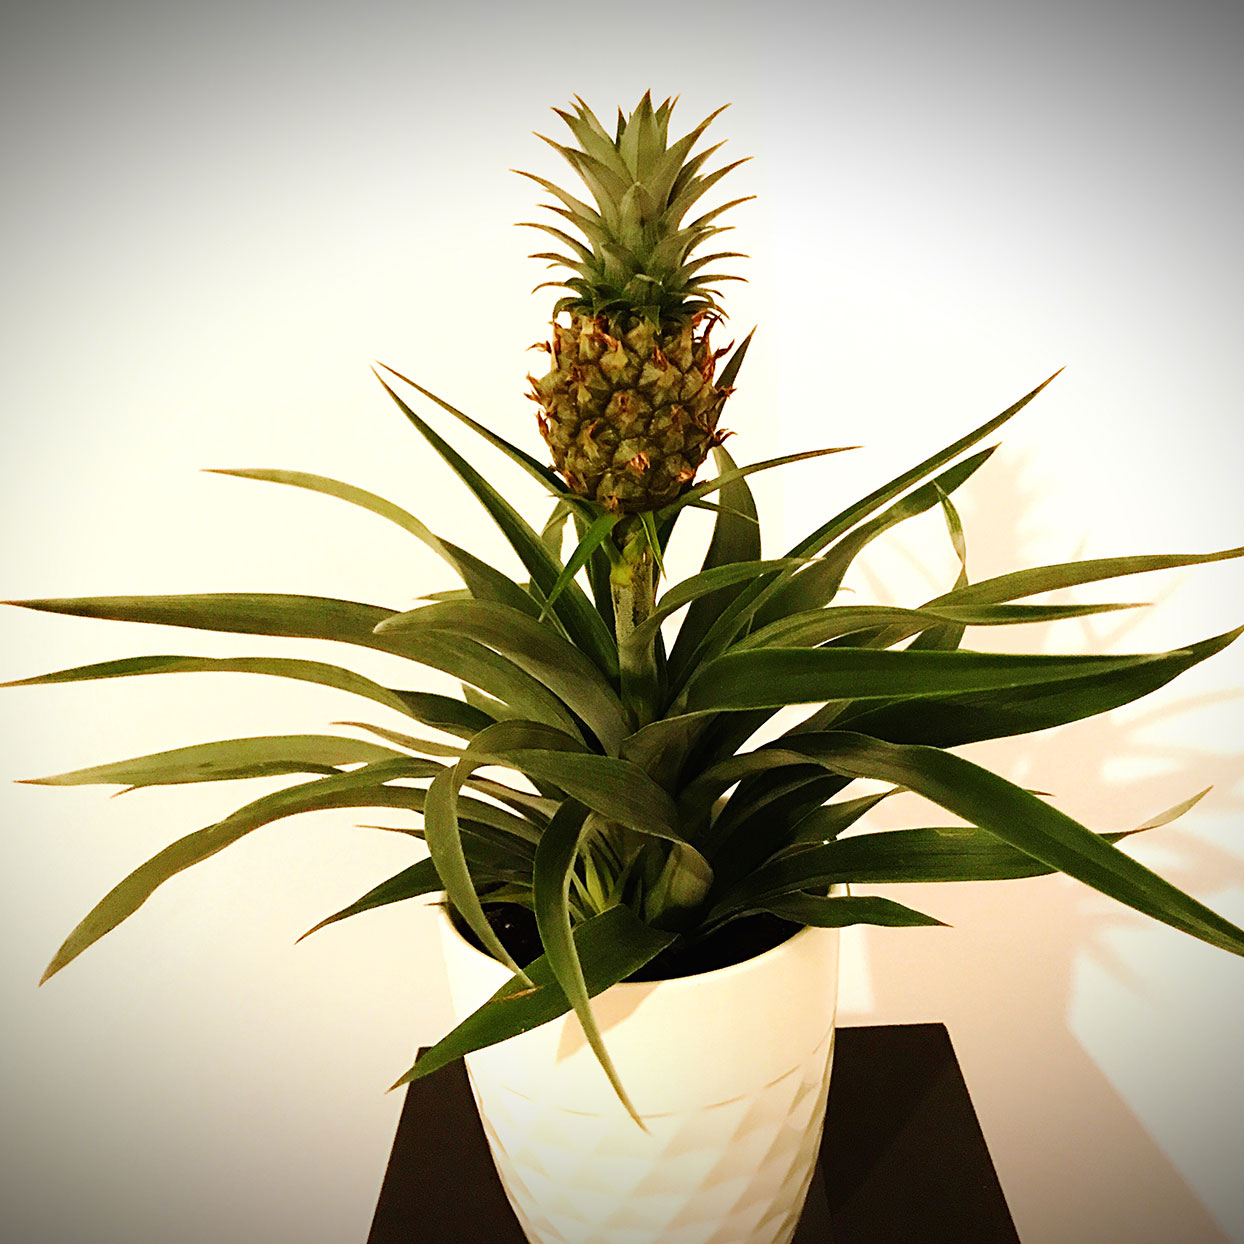 Pineapple Plant in a Pot